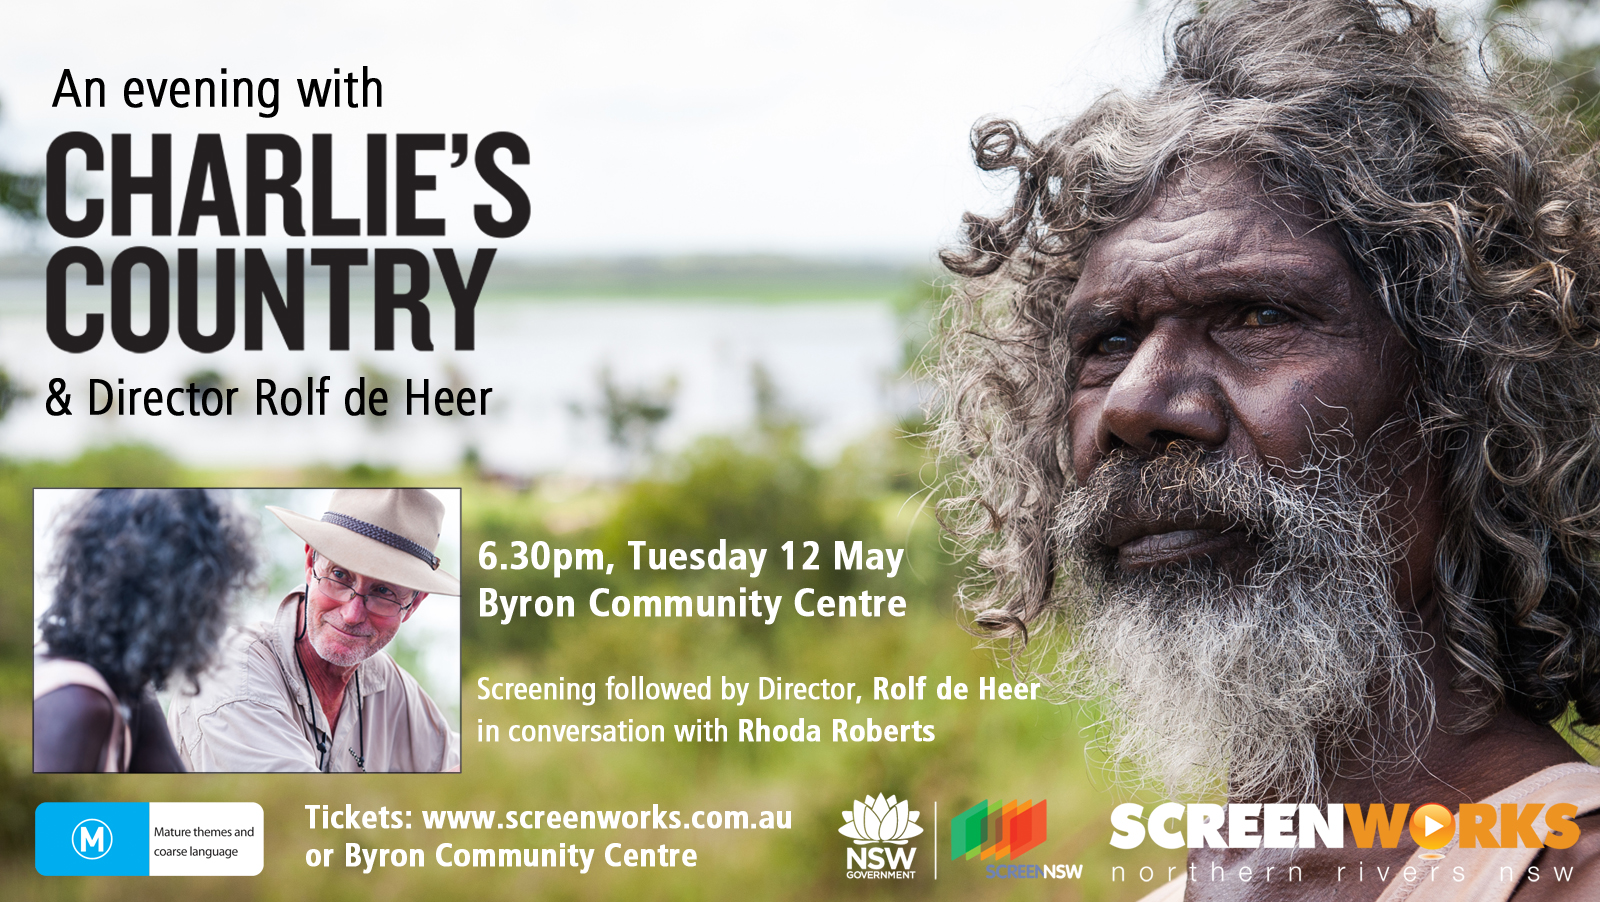 Screening of Charlie's Country, followed by Director Rolf De Heer in conversation with Rhoda Roberts and audience Q & A.